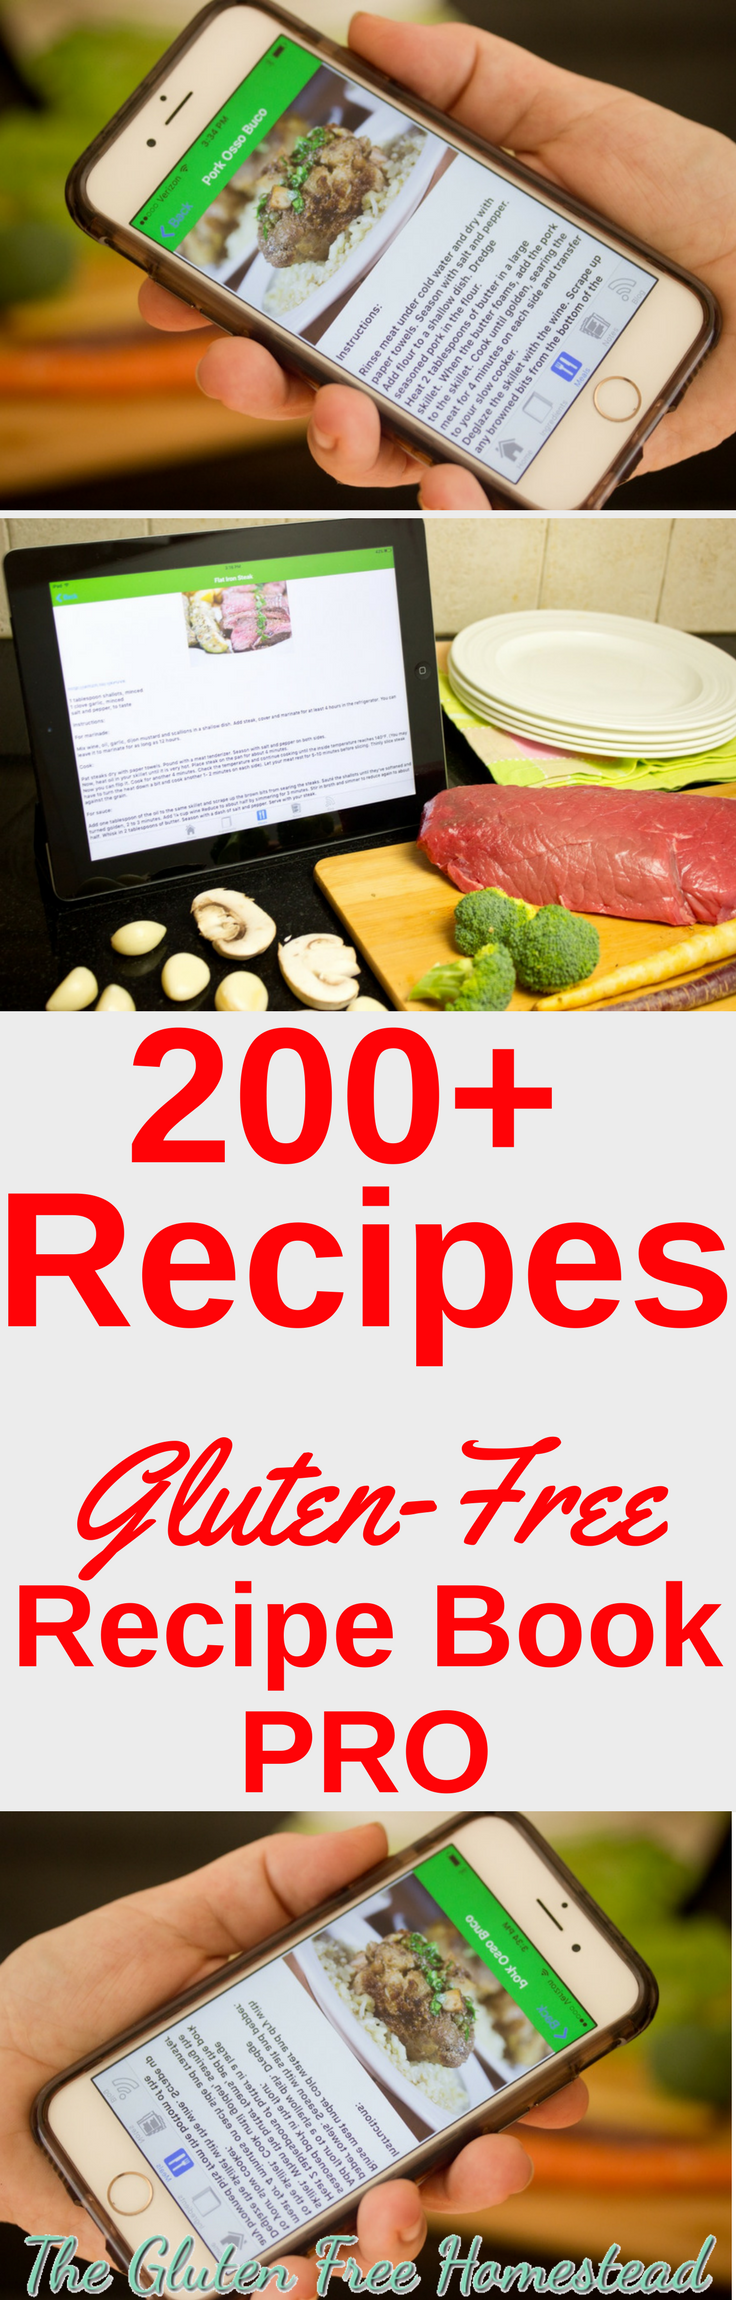 The best gluten free recipe book iPhone app | convenient | iPhone and iPad app | useful when you're on the go | Pick up ingredients while you're at the store | over 200 gluten free recipes ideas | includes over 55 low carb gluten free recipes